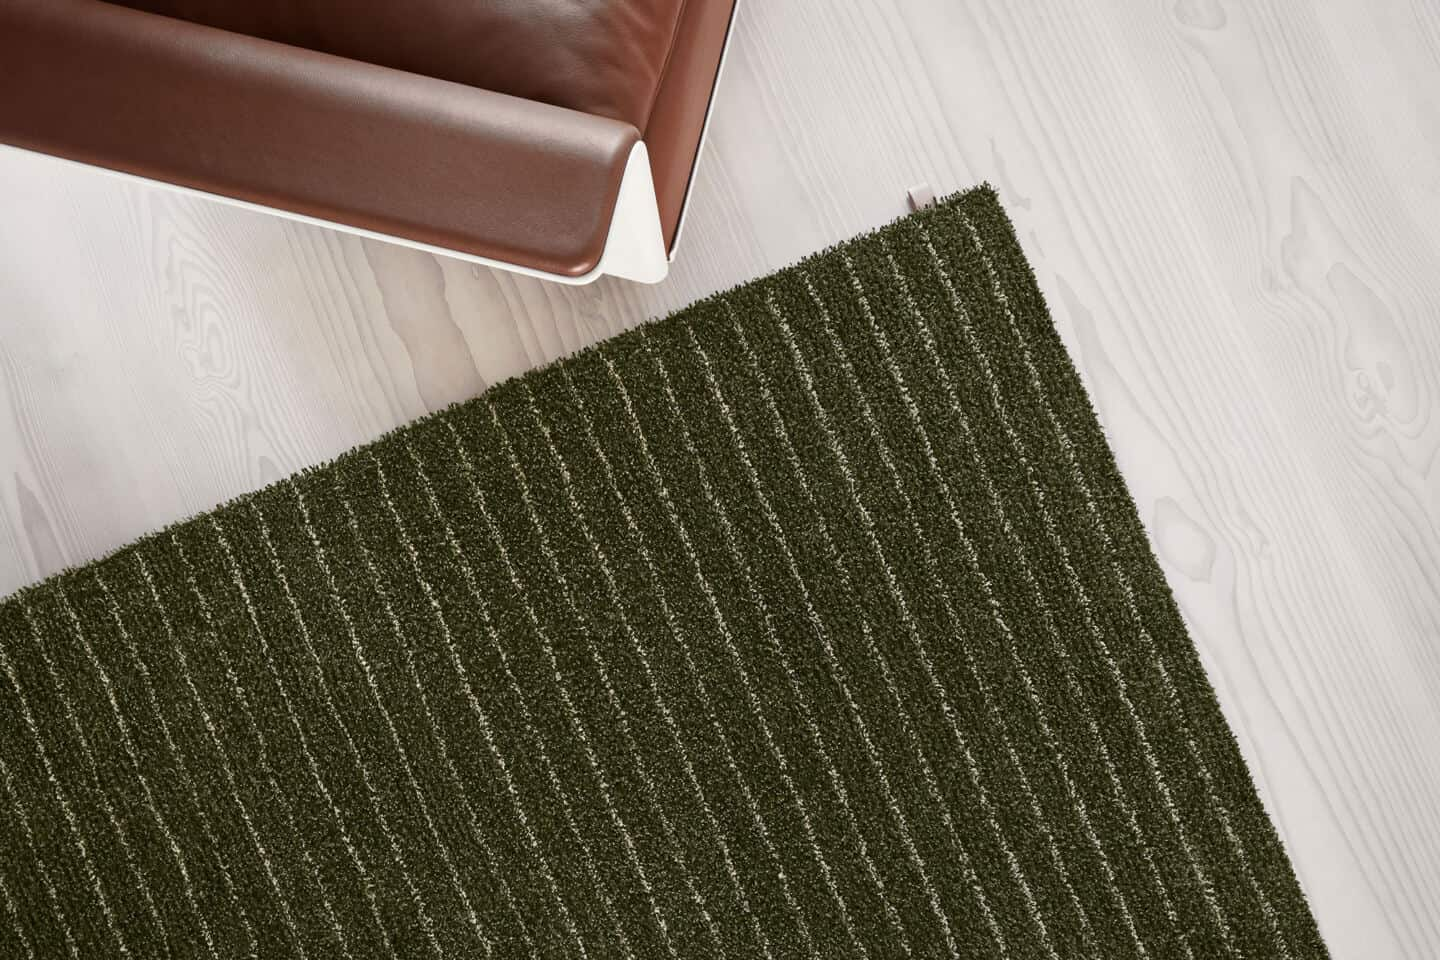 Bringing Natural Elements into the Home. A rug that looks like fresh grass